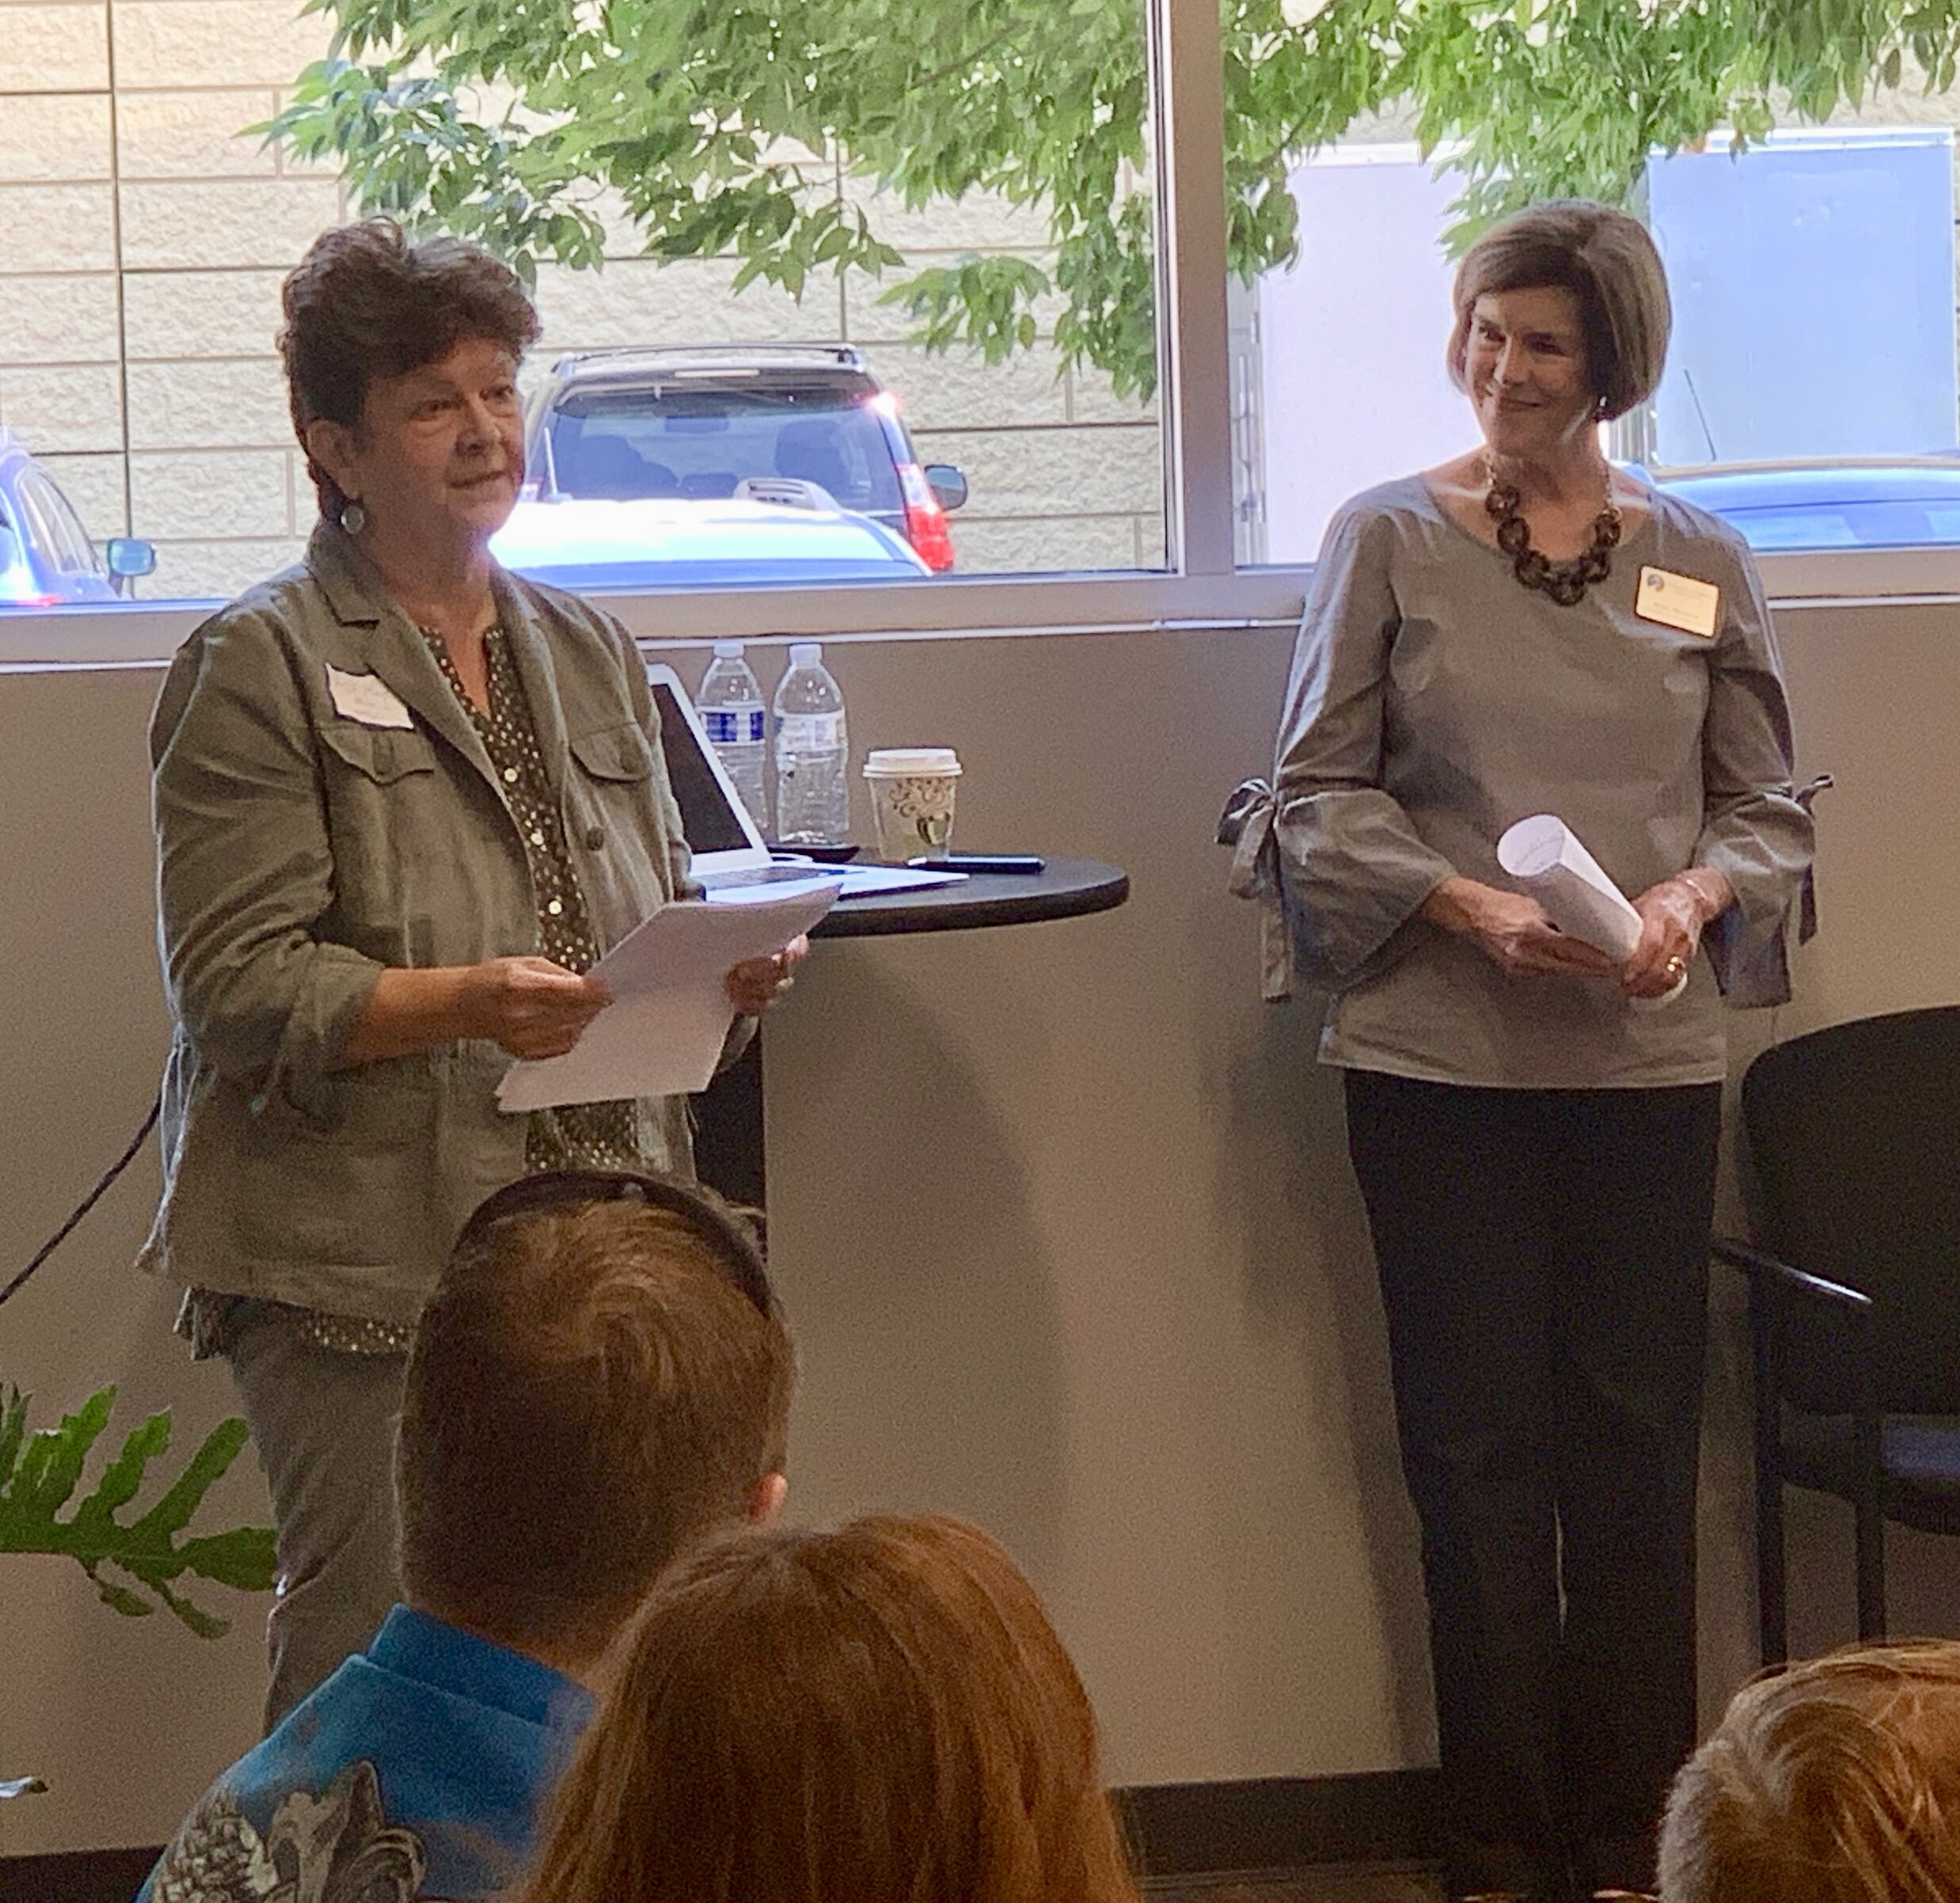 Kathy Price and Mary Bartzen tell church leaders about the ins and outs of school partnerships.